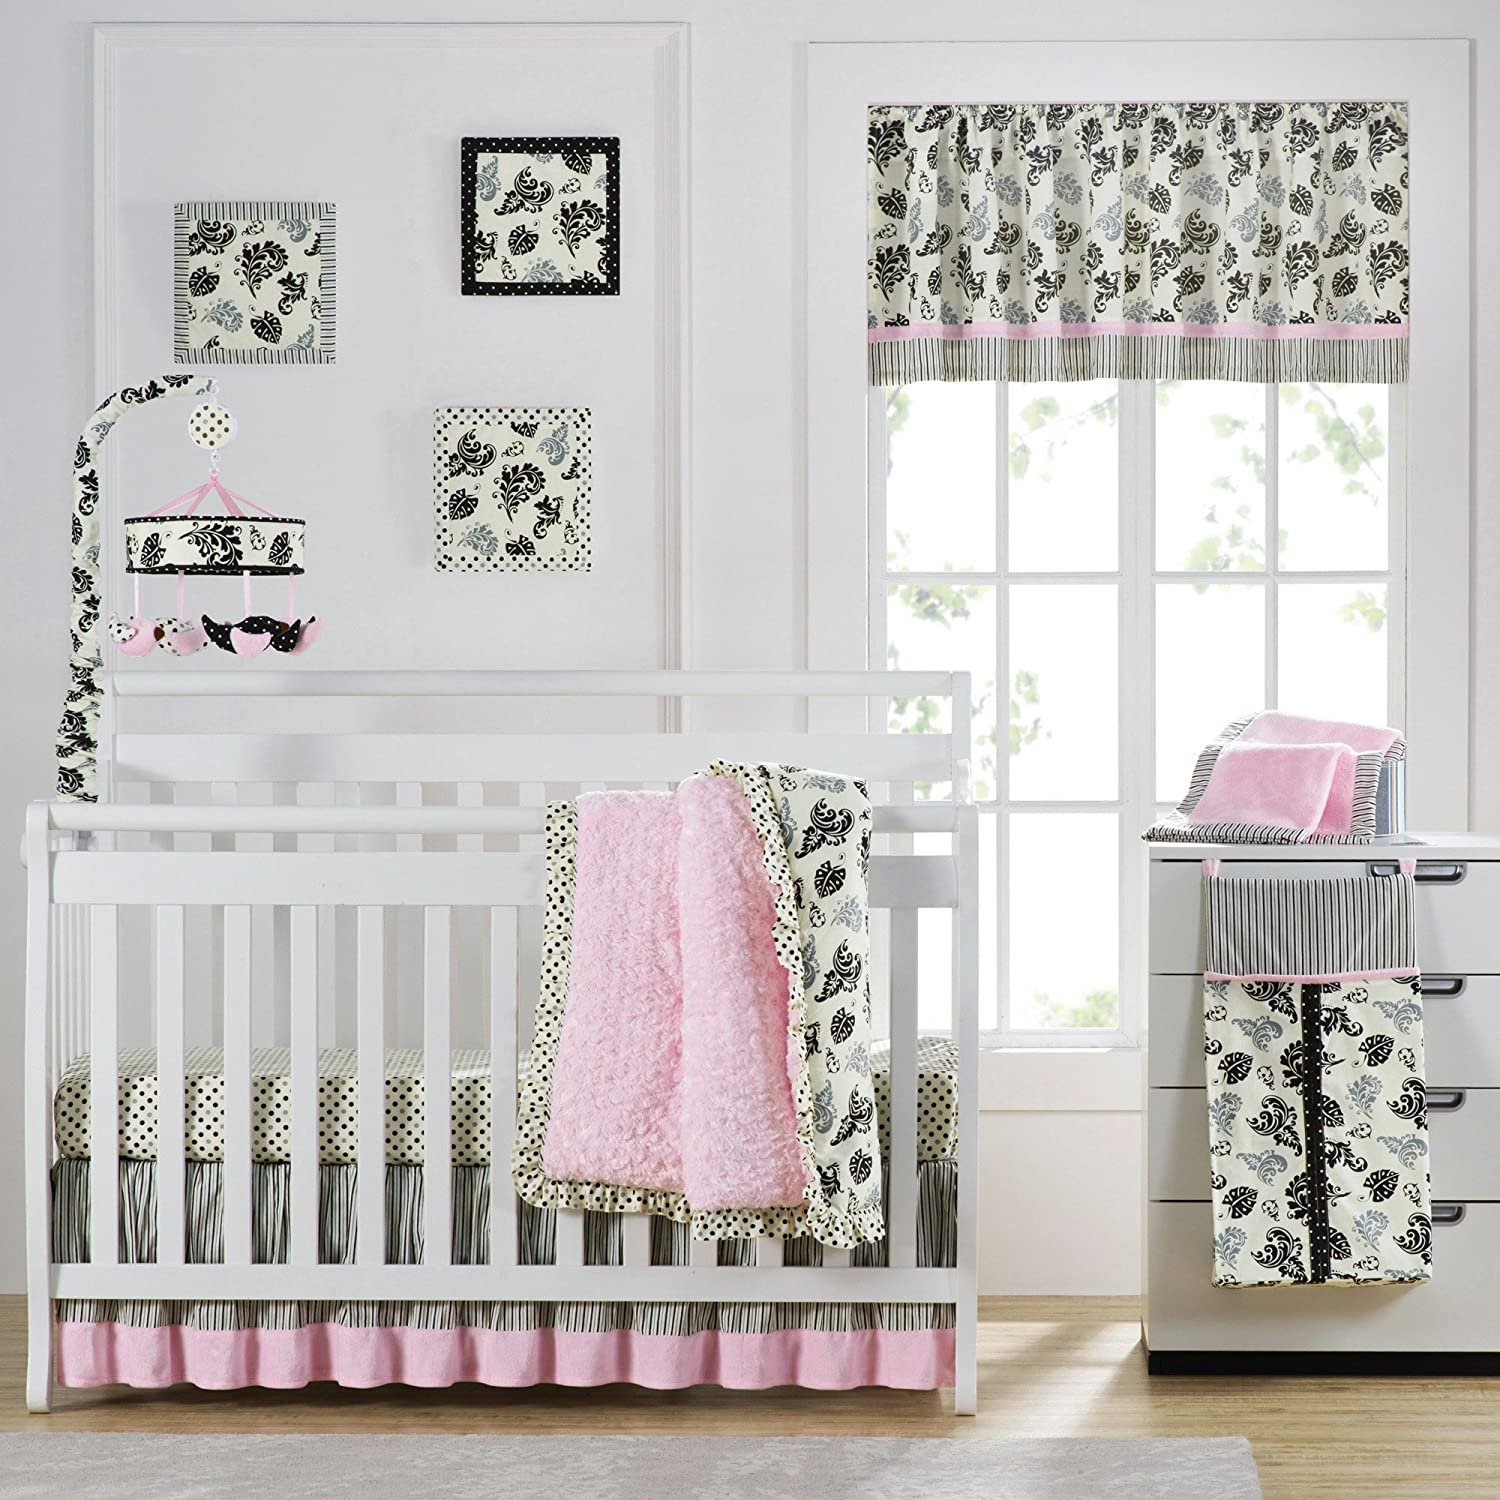 Giggle /& Smile Versailles Pink 10 Piece Baby Crib Bedding Set by Laugh